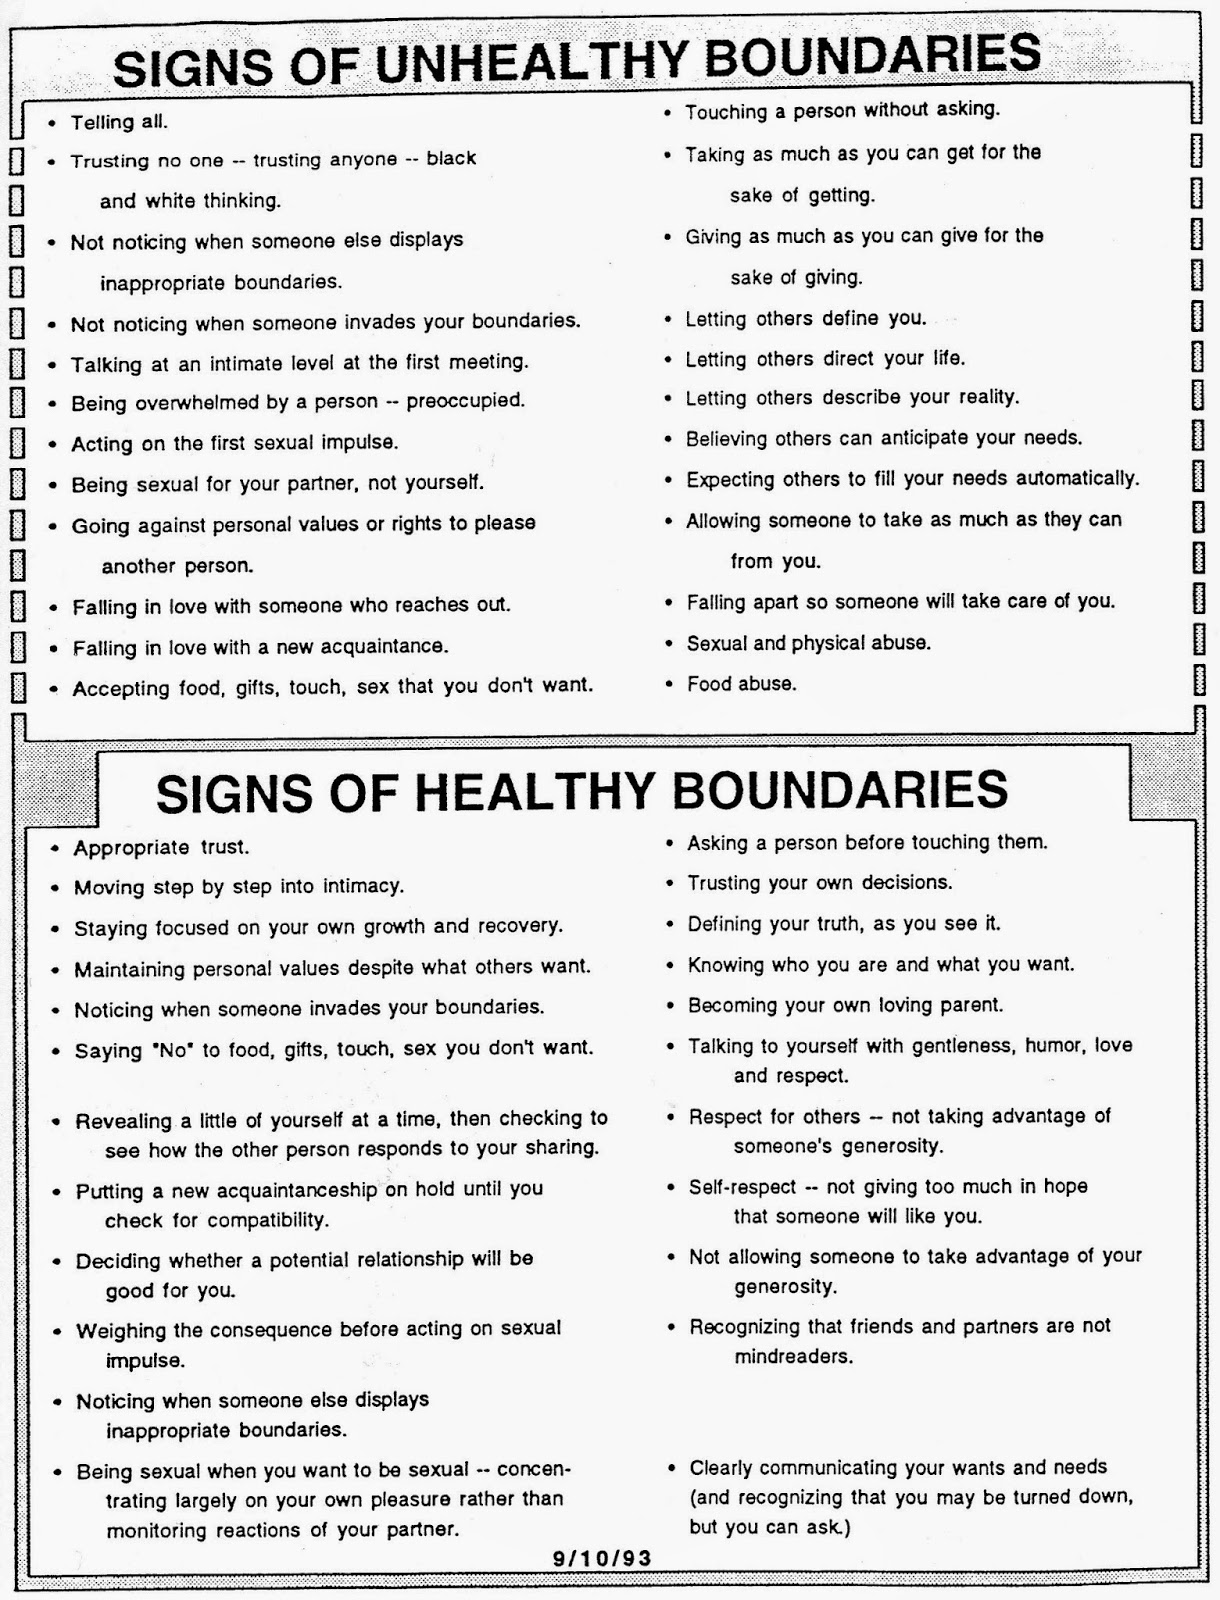 worksheet Healthy Relationships Worksheets boundaries in relationships worksheet free worksheets library pr t bles he lthy bound ries w ksheet kigose thous nds of